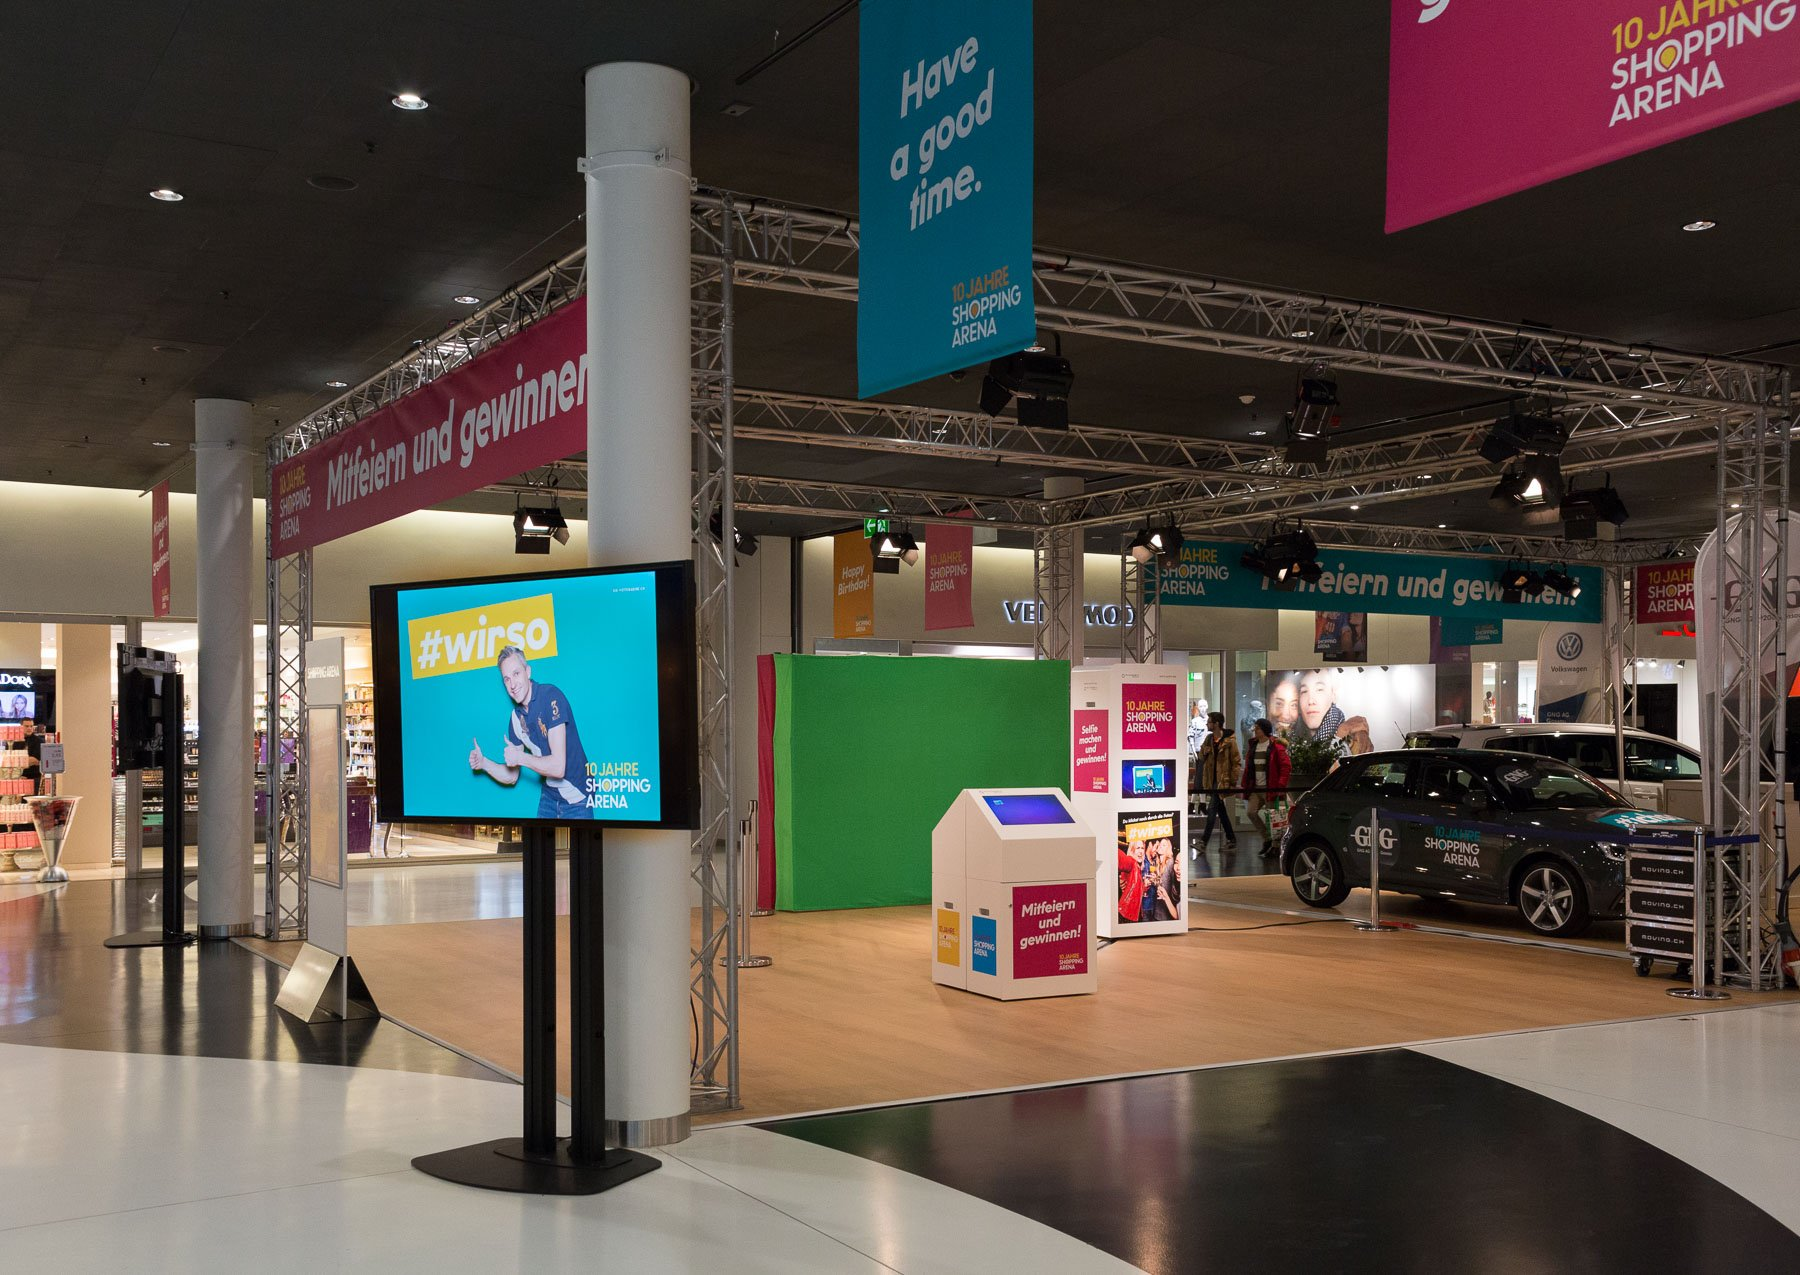 Photobooth pro mit diashow shopping arena sg 01 die for How to be a professional shopper